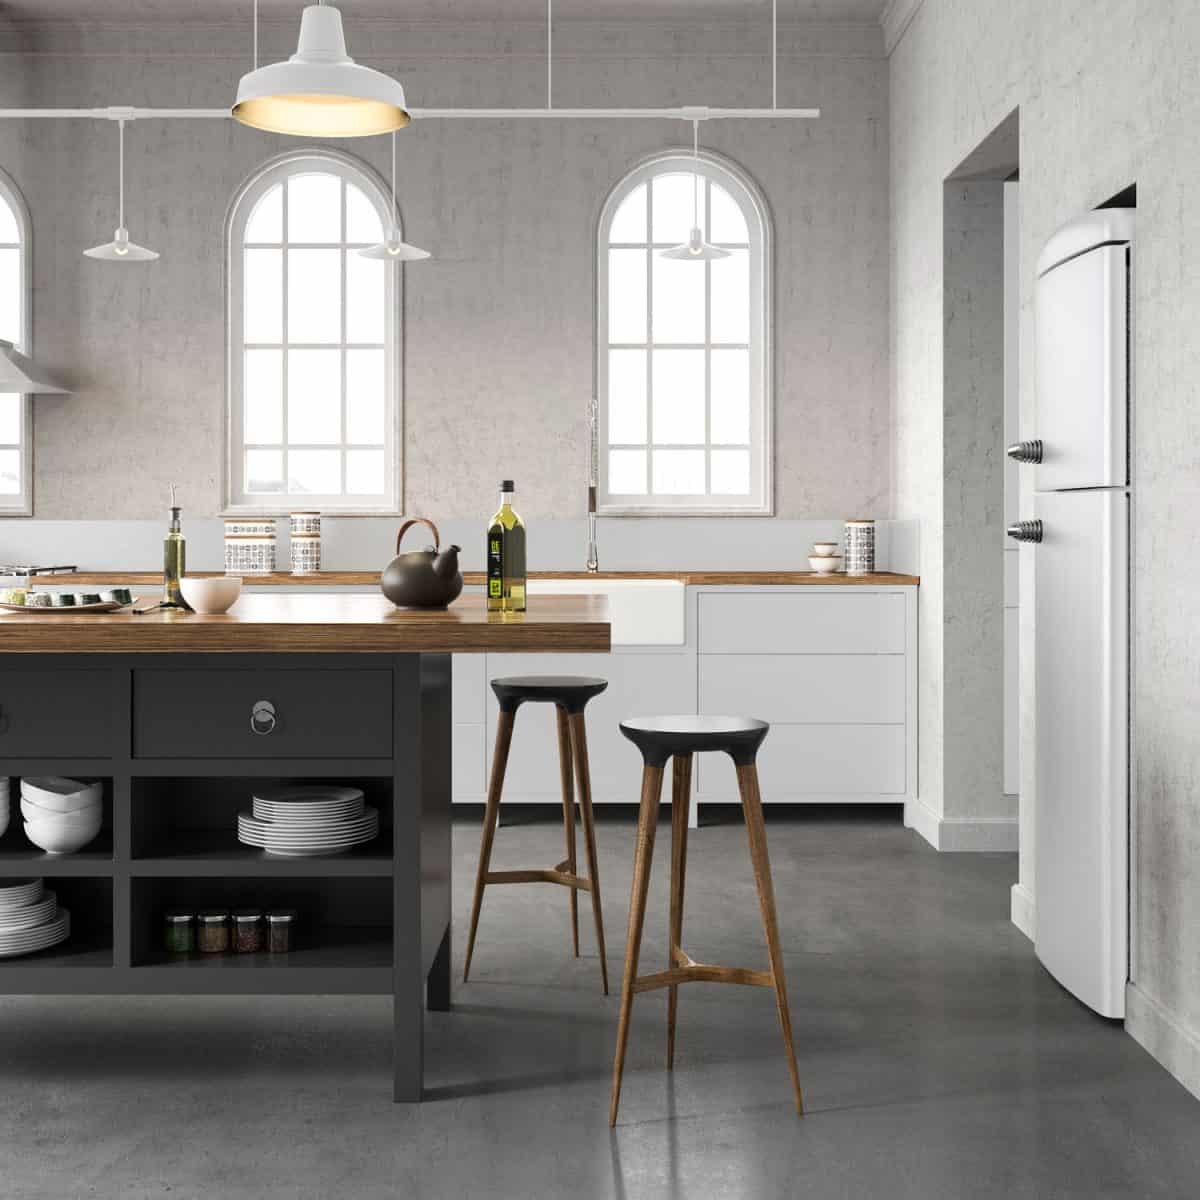 Luxurious interior of a kitchen with white walls, shiny concrete flooring and a wooden countertop kitchen